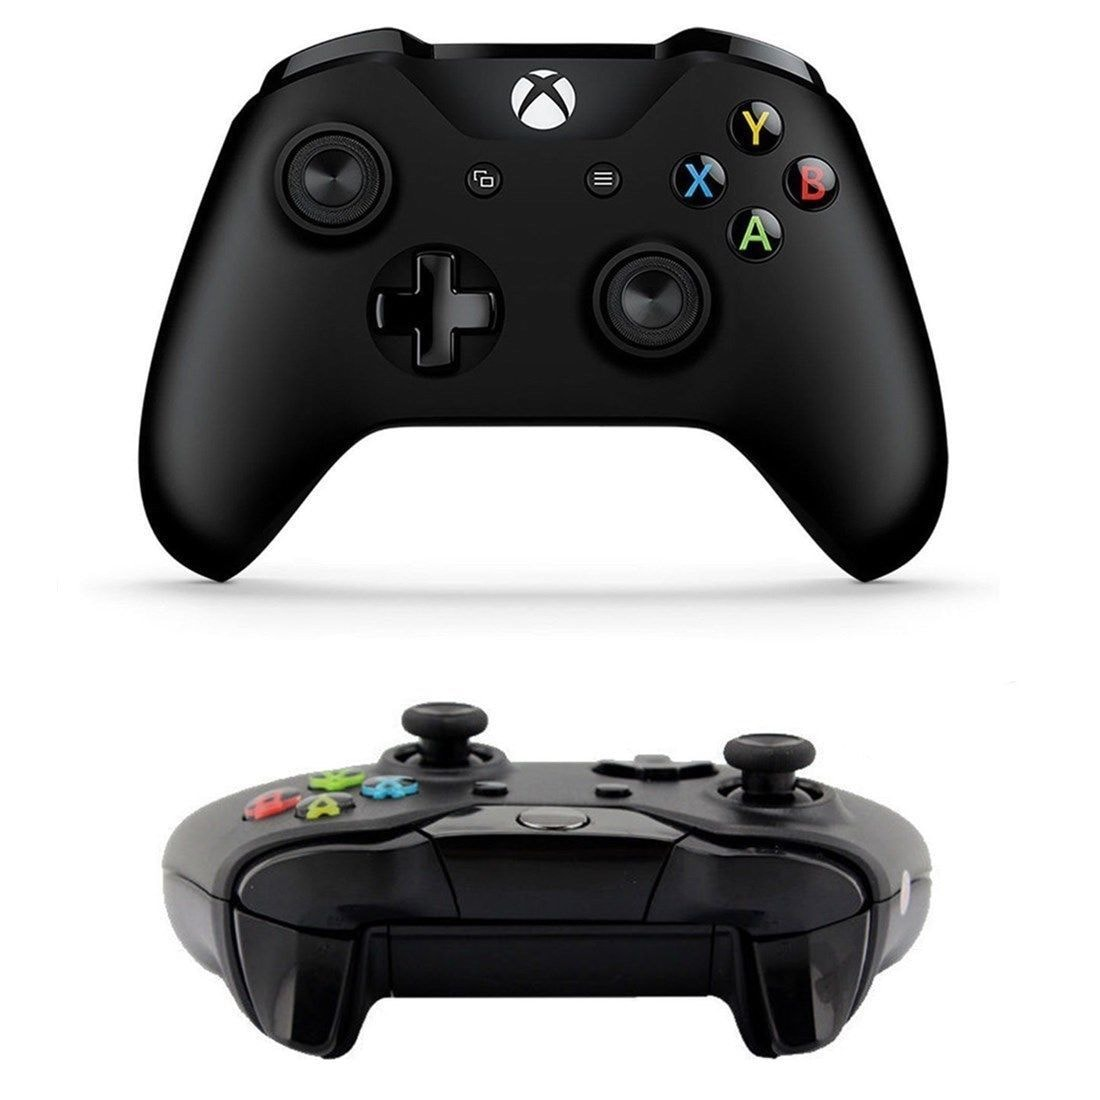 Xbox One Black Bluetooth Wireless Microsoft Controller with 3. 5mm Headset Jack - 2